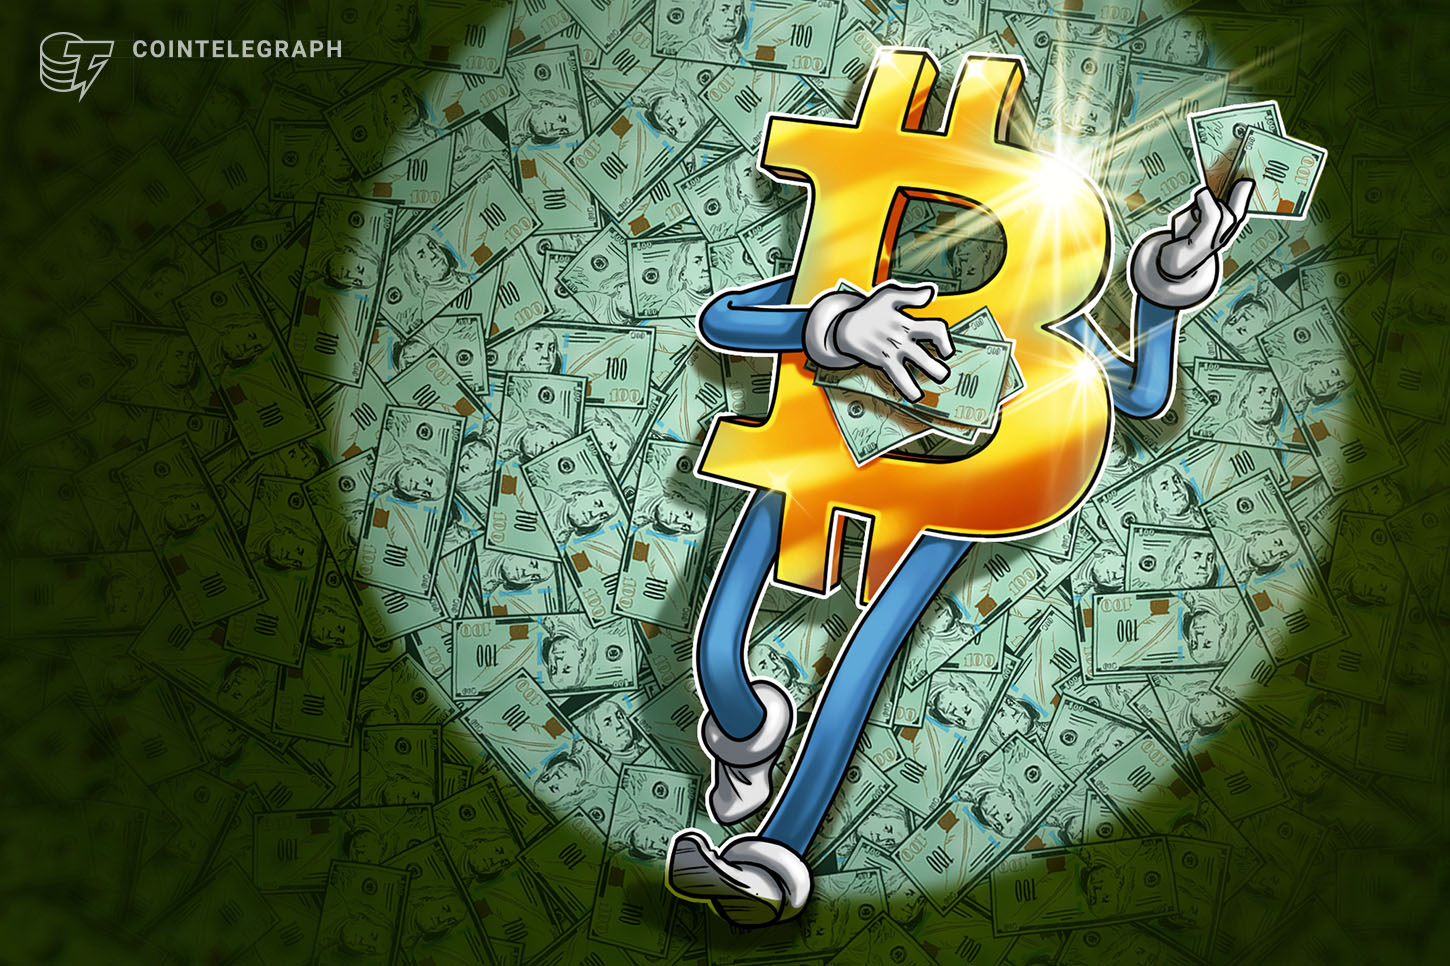 New 2020 Bitcoin Price High at $12,000 Proves Bulls Remain in Control